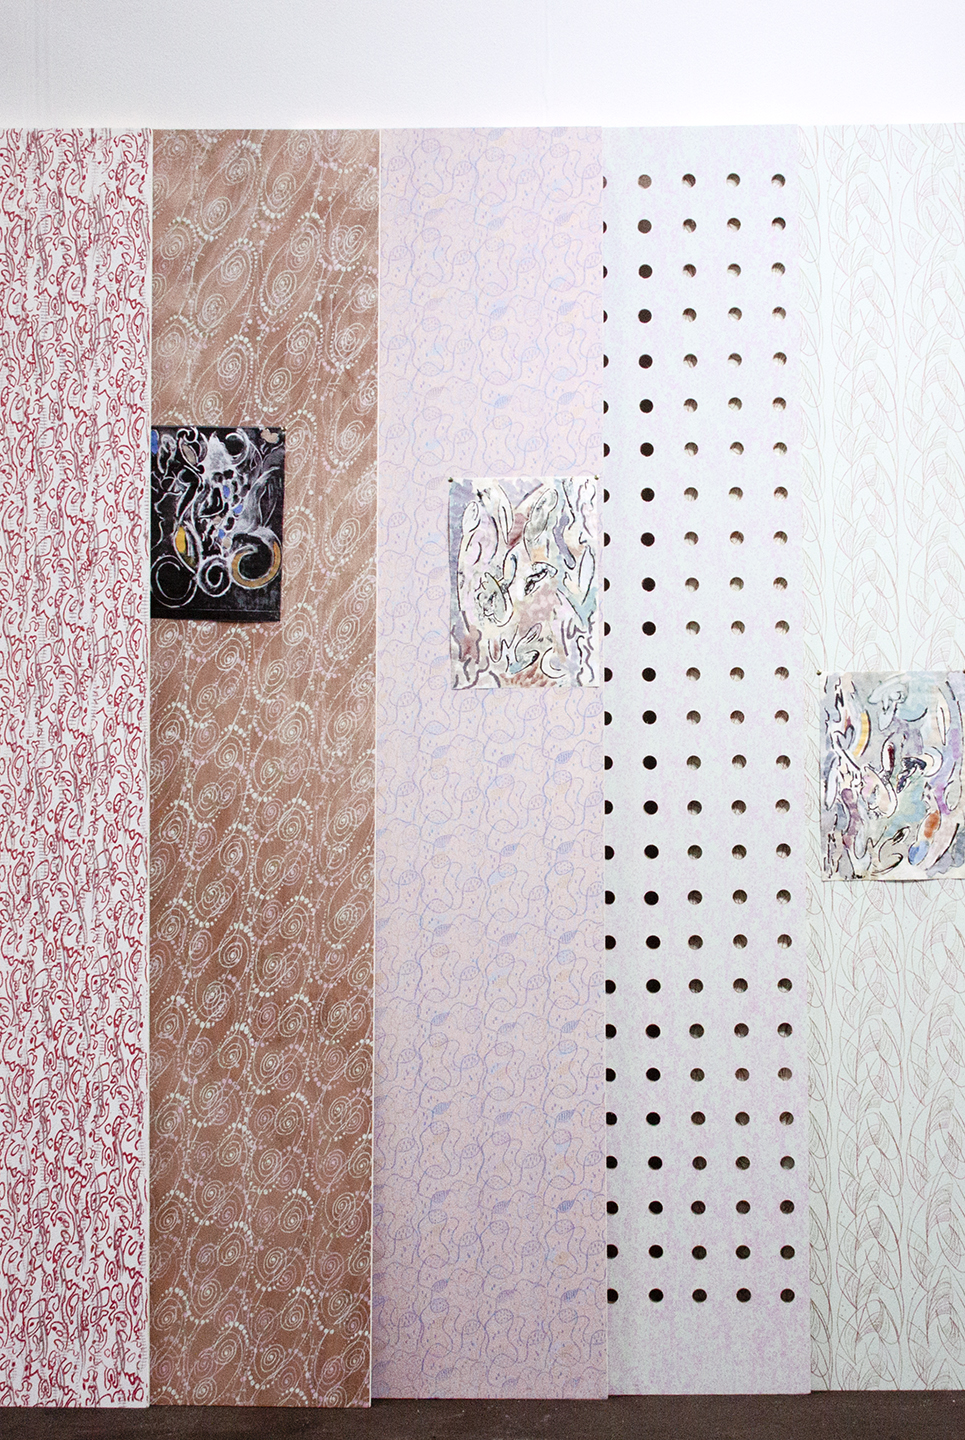 Marc Camille Chaimowicz at  Andrew Kreps , New York